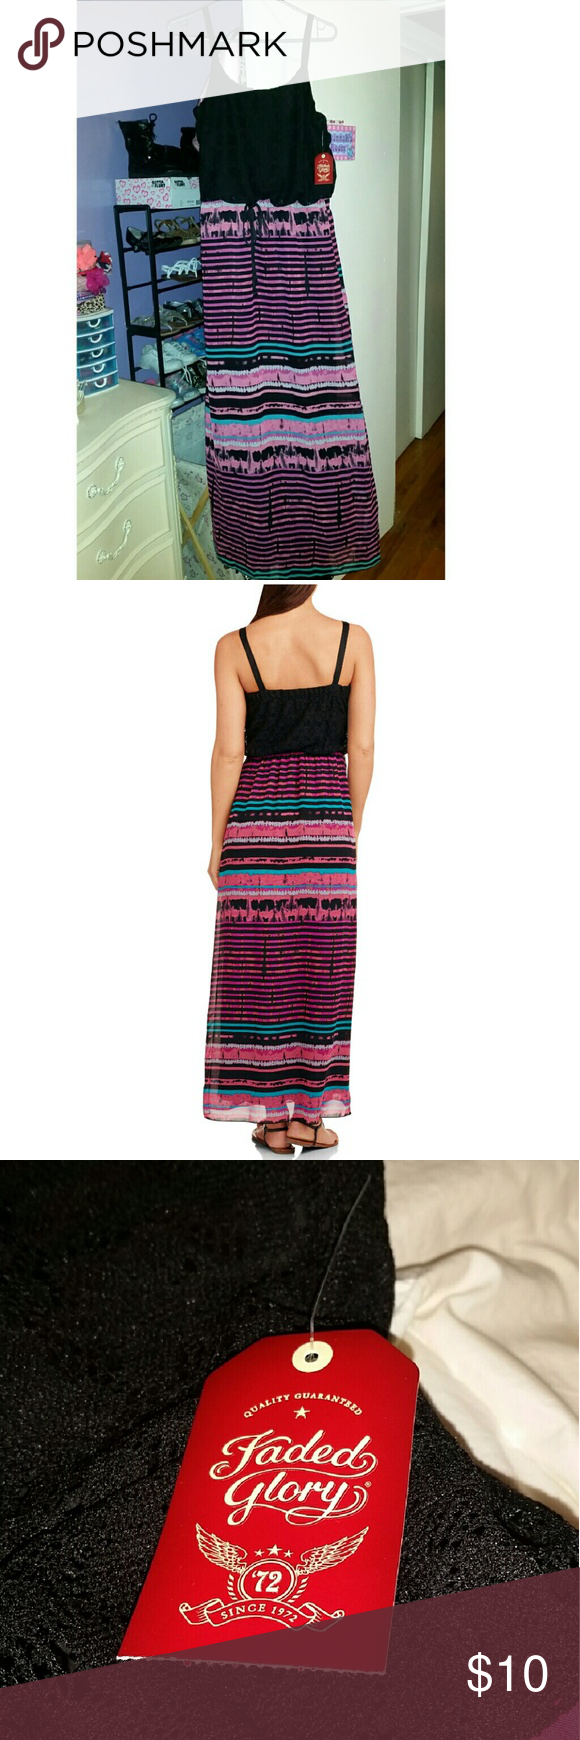 Faded glory womenus maxi dress this is a brand new never worn tie